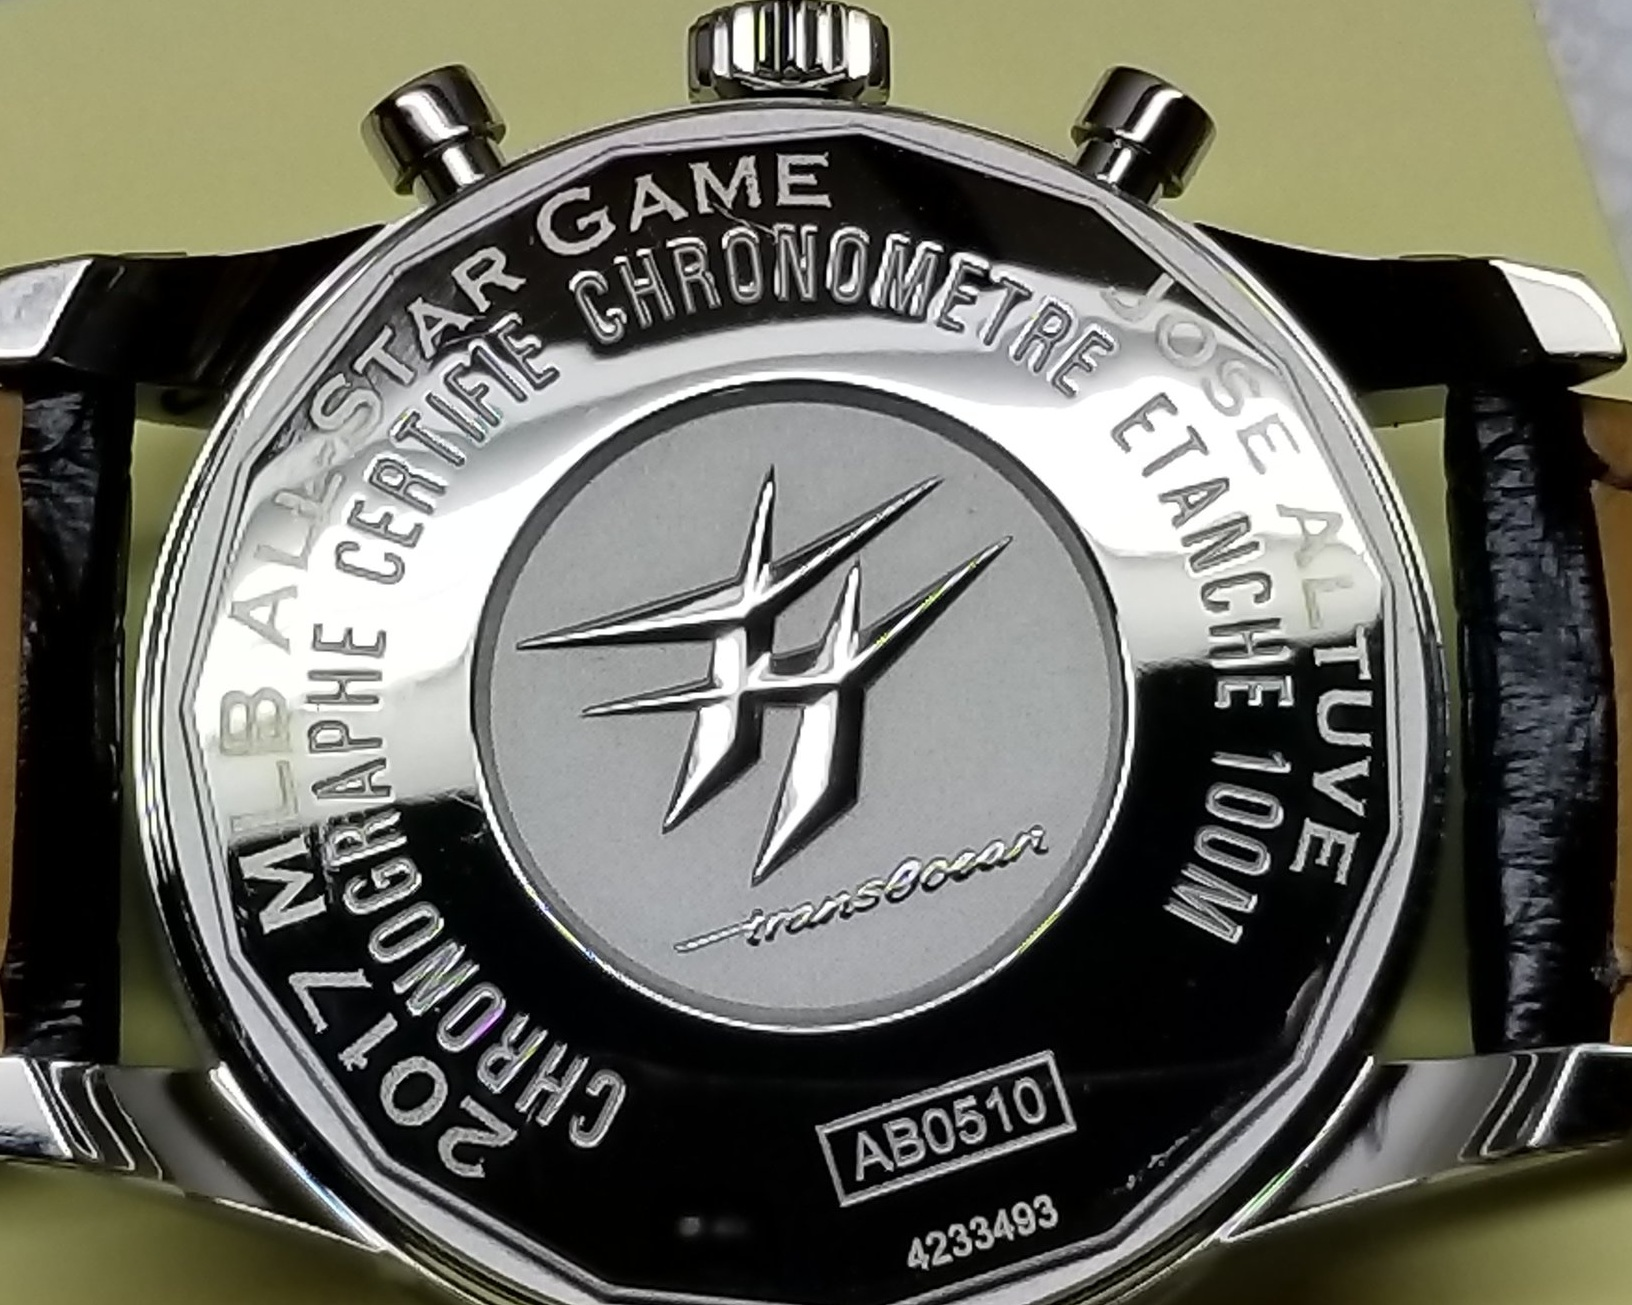 Custom Engraved Watches - Have your design or text laser engraved, marked, or etched on watches of all brands and styles.